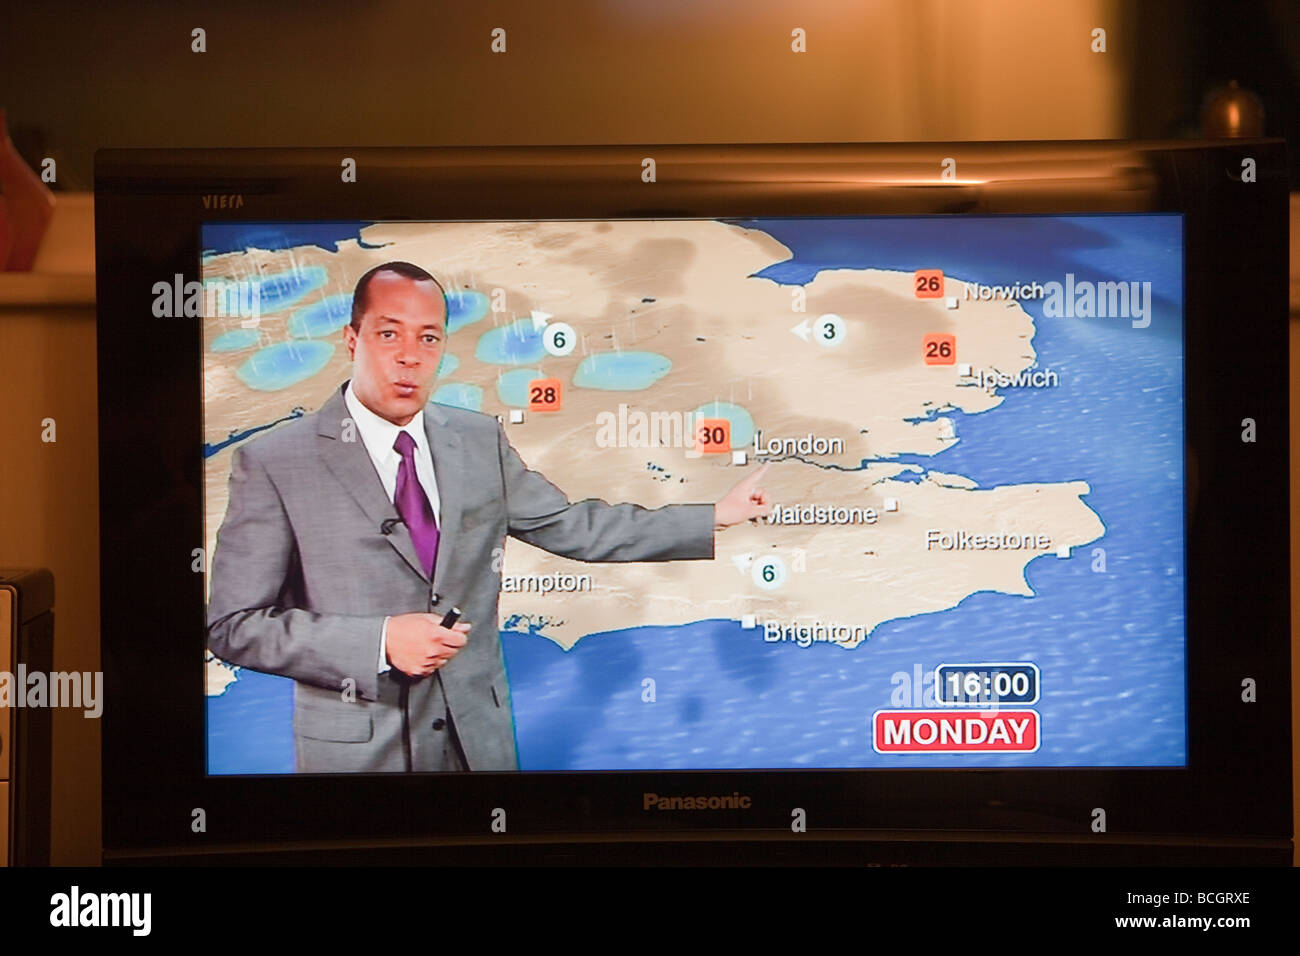 A TV weather forecast forecasting a heat wave in the UK Stock Photo